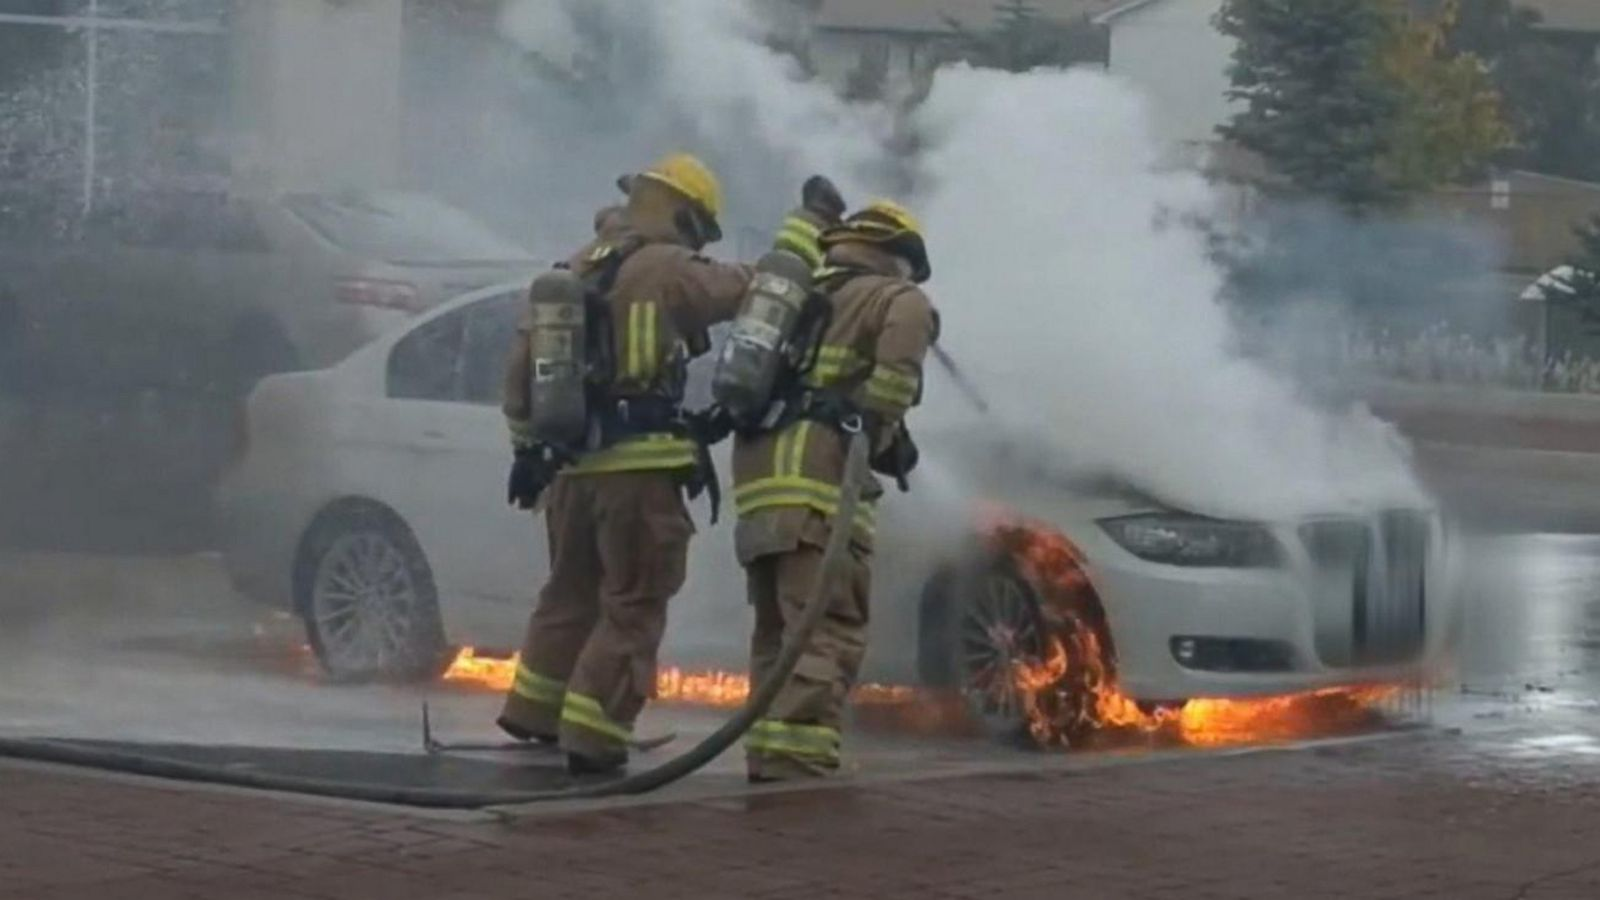 Parked BMWs bursting into flames leave owners with questions - ABC News